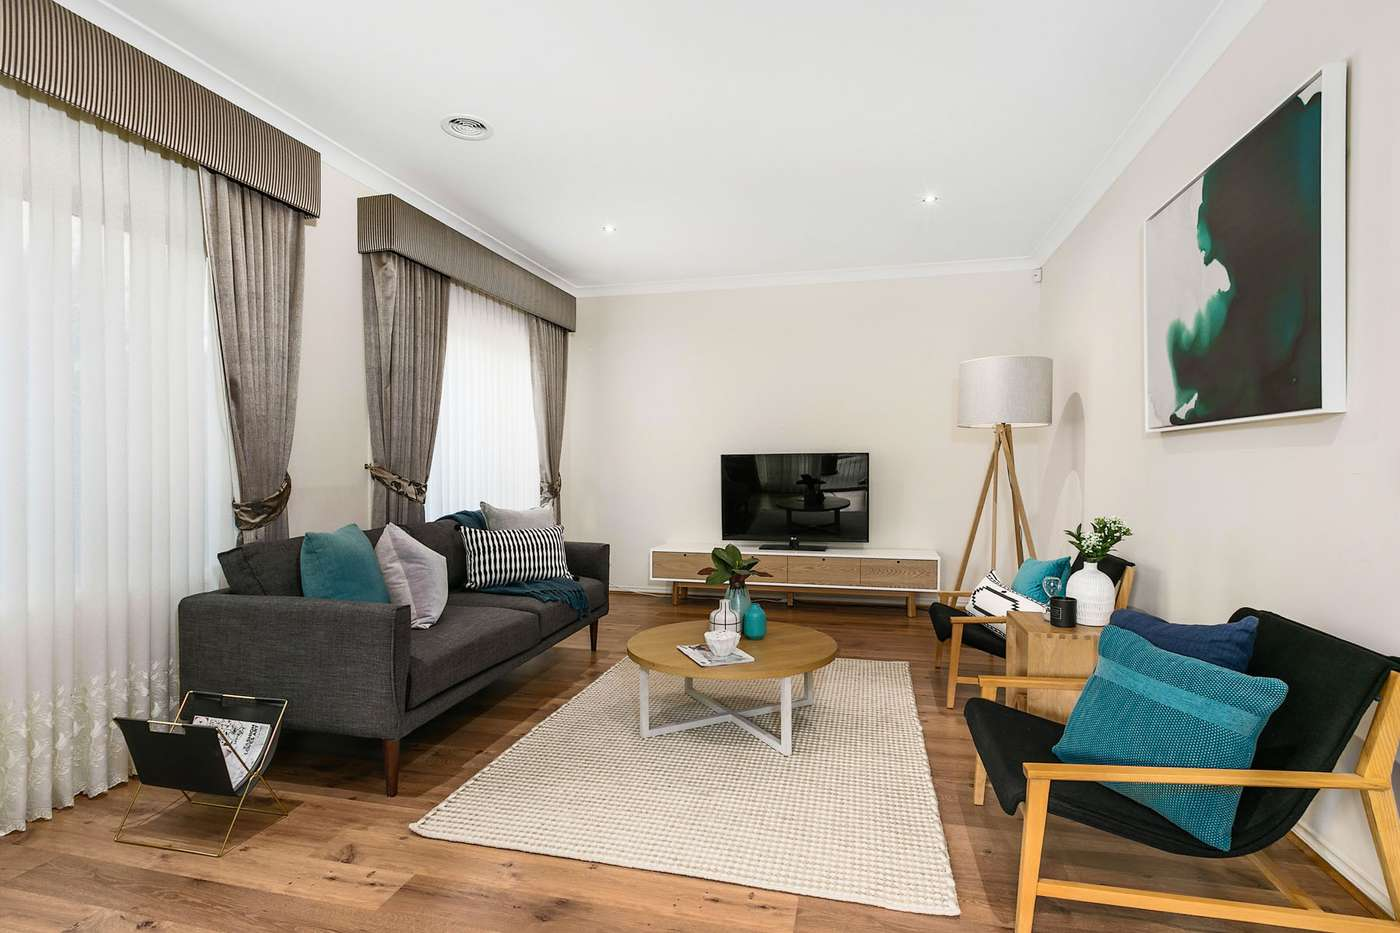 Main view of Homely house listing, 3 McLaren Chase, Caroline Springs, VIC 3023